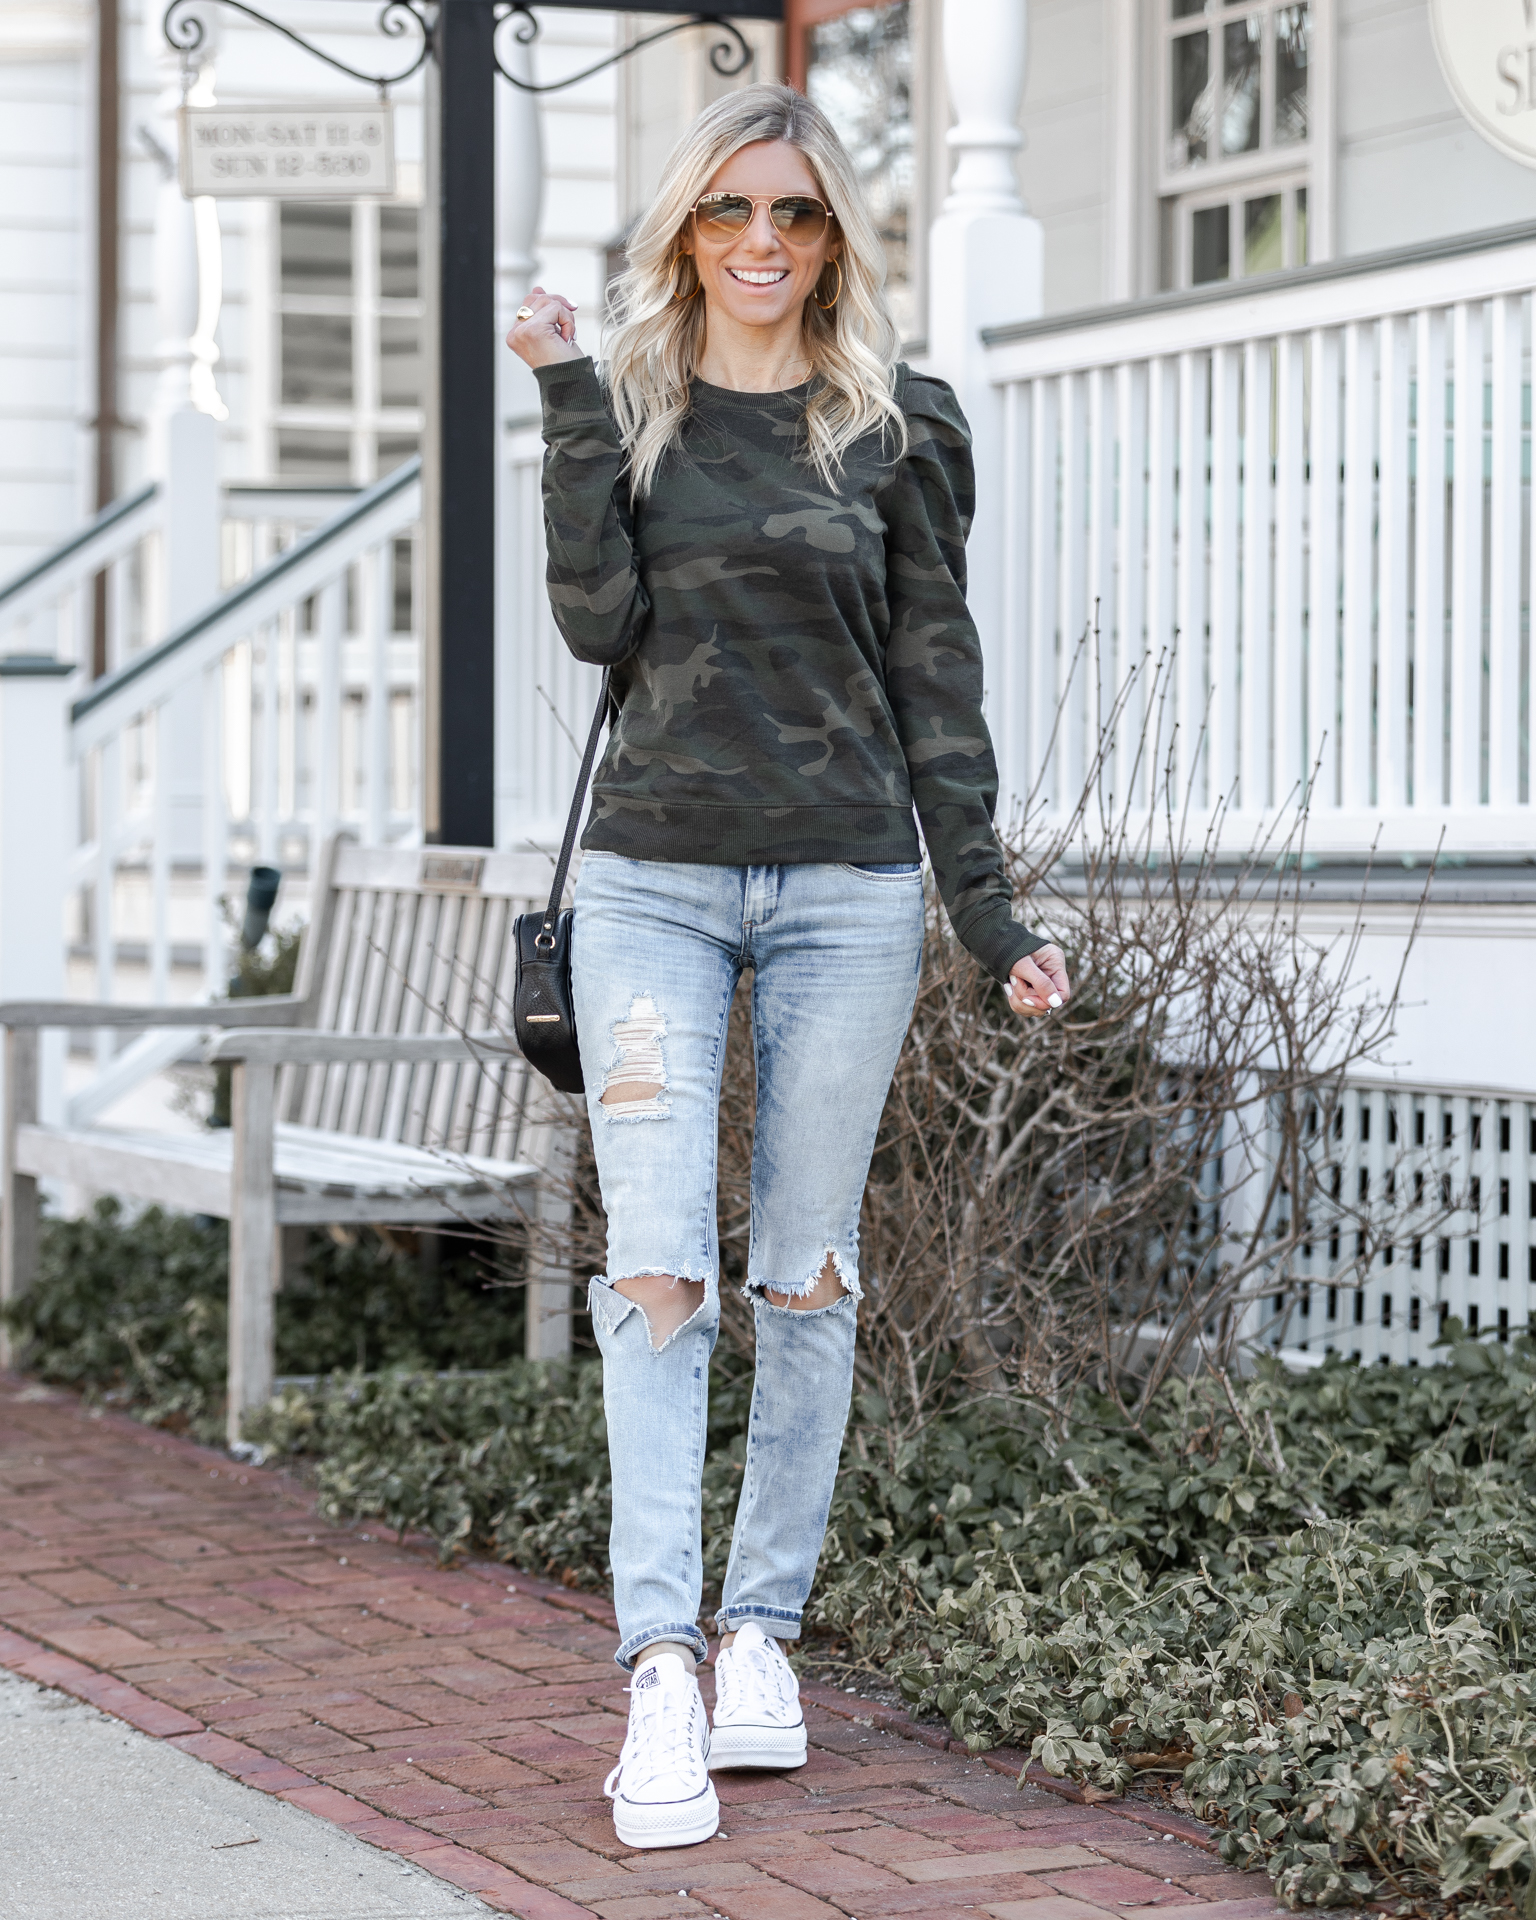 casual-ripped-jeans-and-camo-sweatshirt-the-glamorous-gal